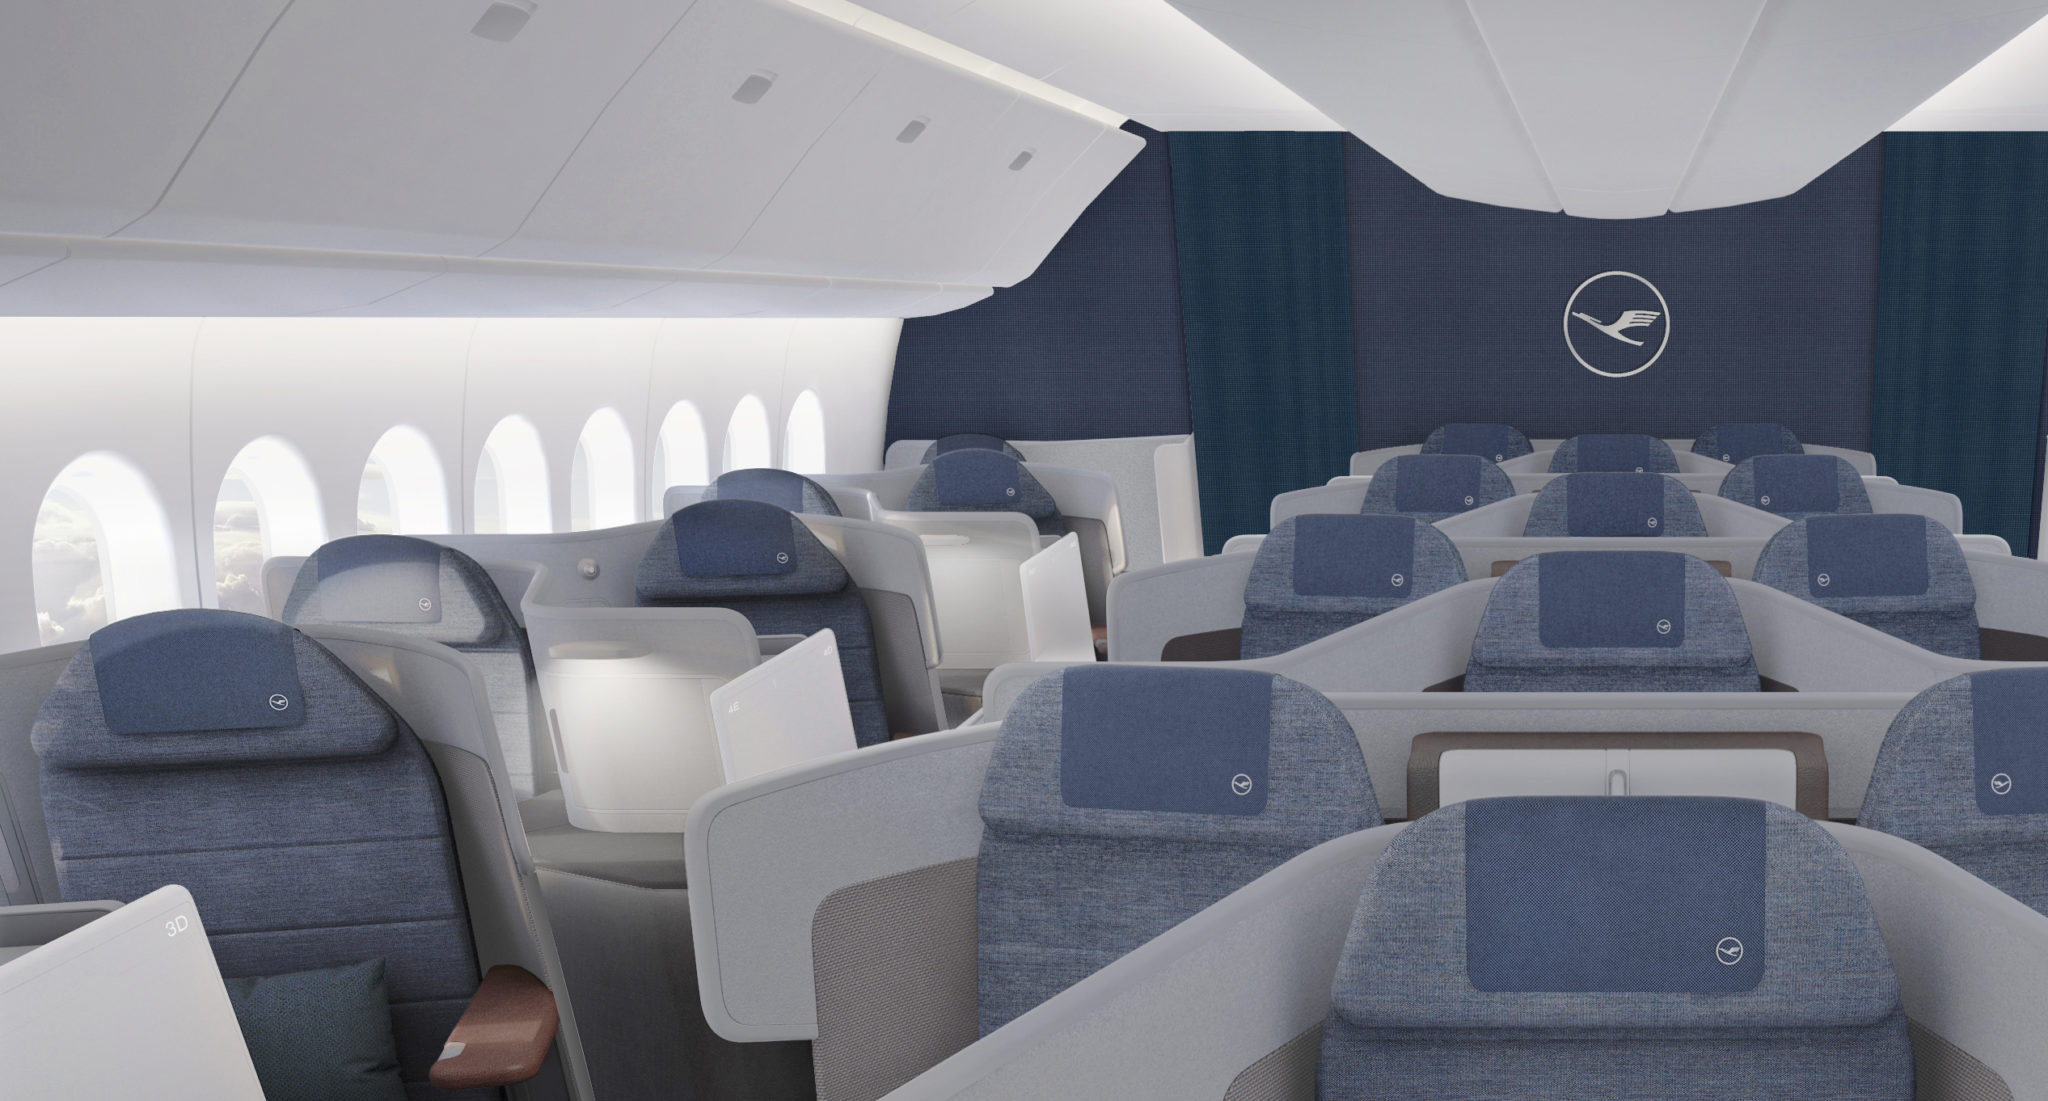 Boeing S 777x Shows Off The Latest Update To Overhead Bin Design Runway